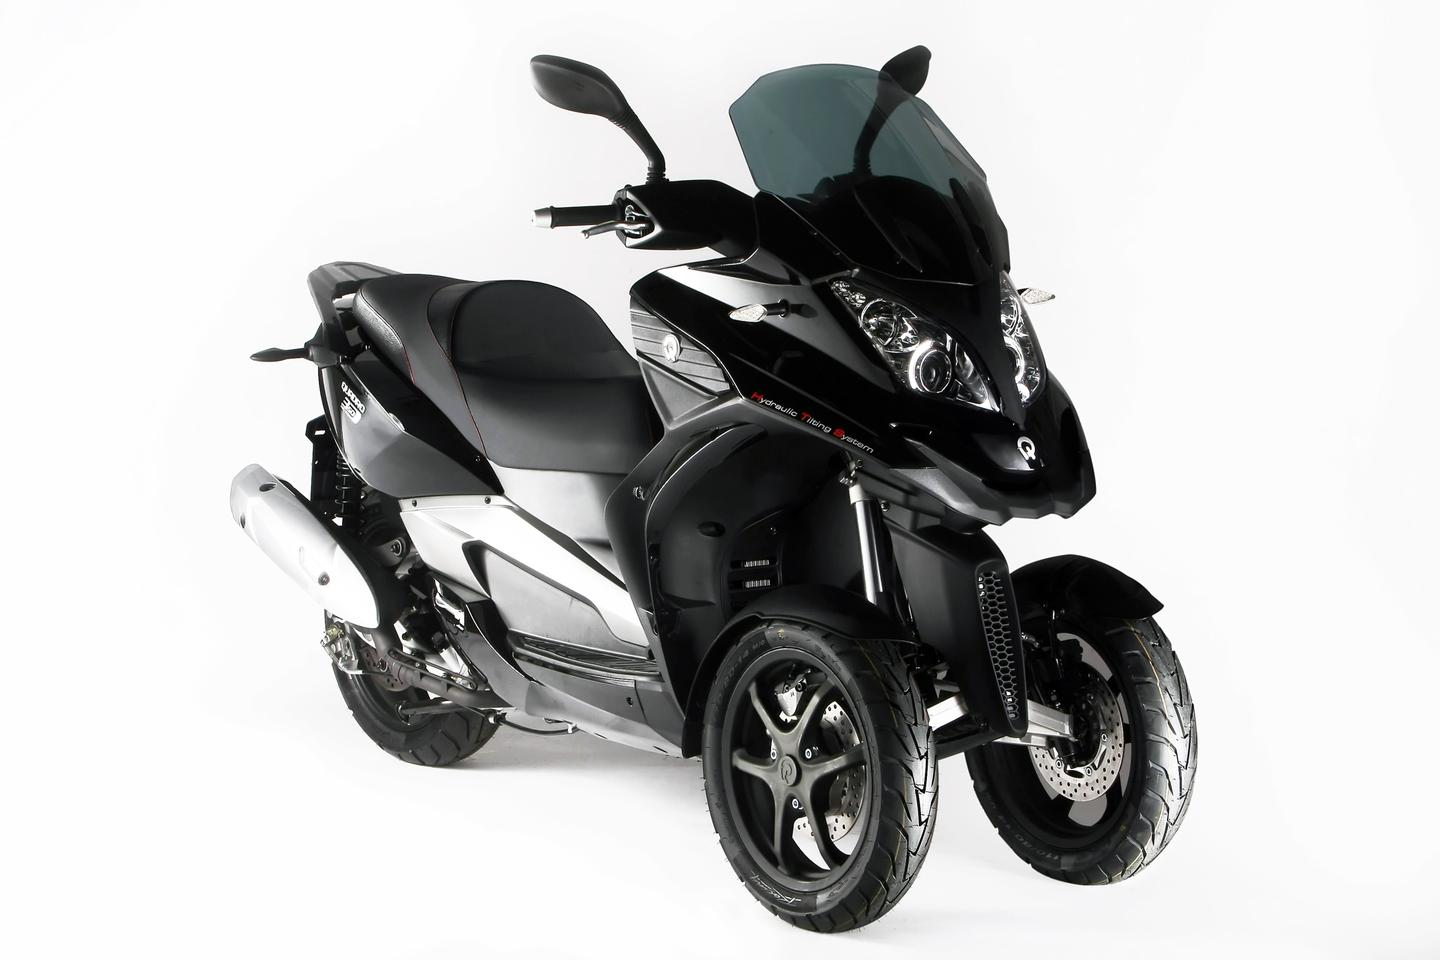 The Quadro 350D - 350cc, tilting 3-wheel scooter